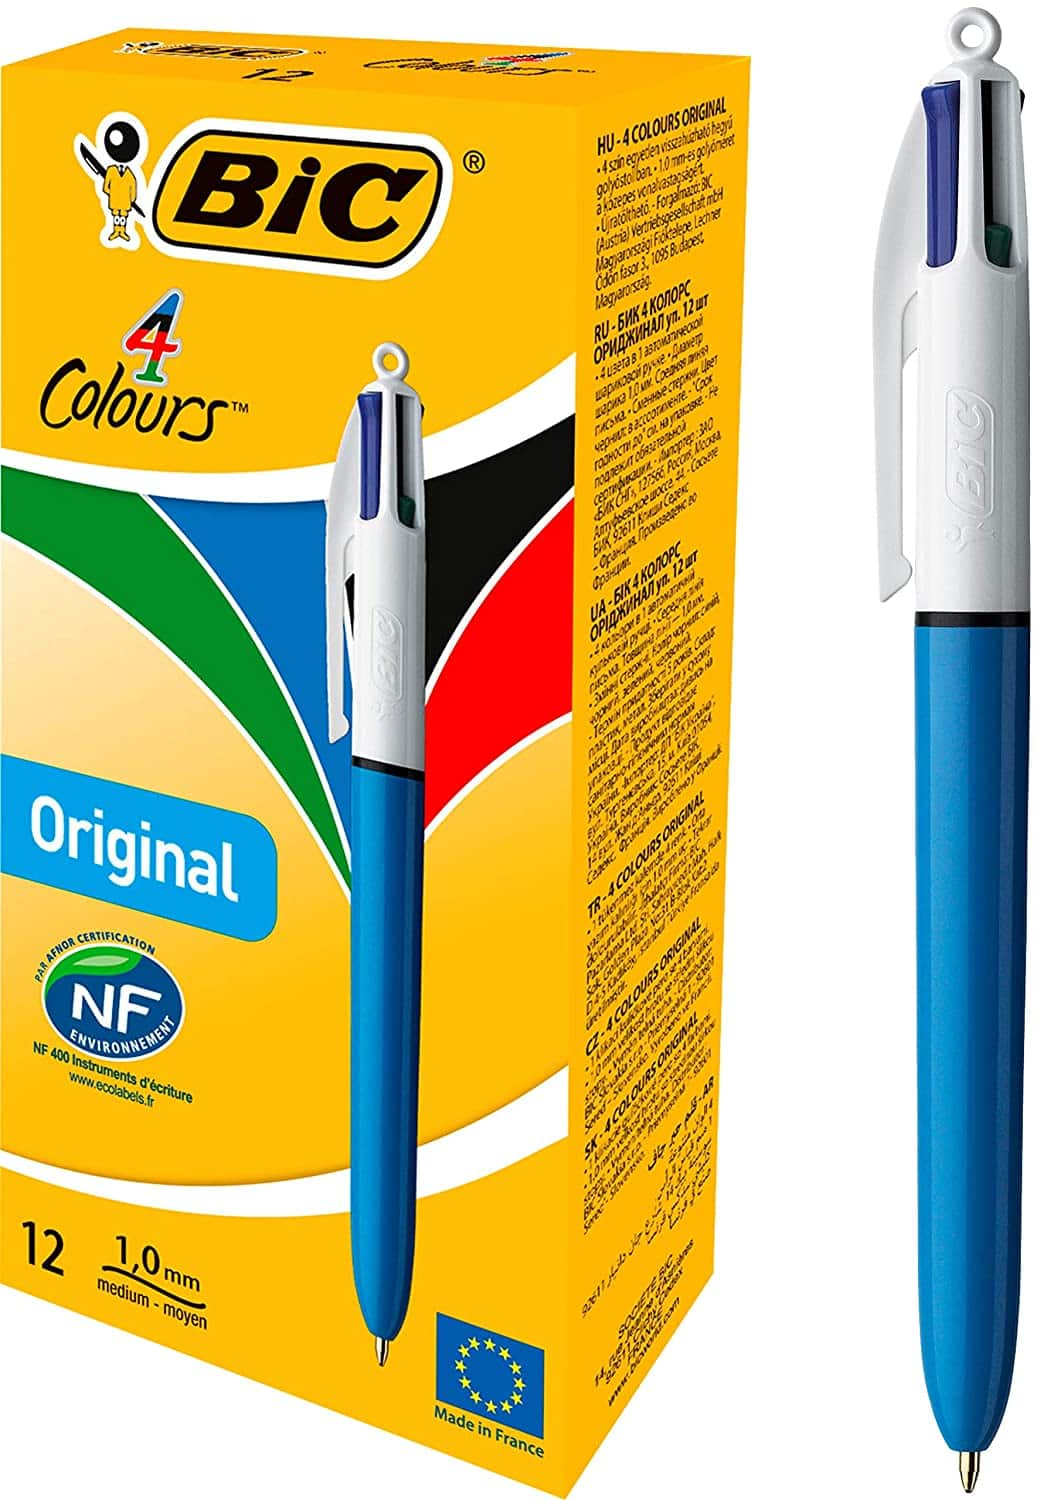 12 count BIC 4-Color Ballpoint Pen, Medium Point (1.0mm), Assorted Inks - $10.04